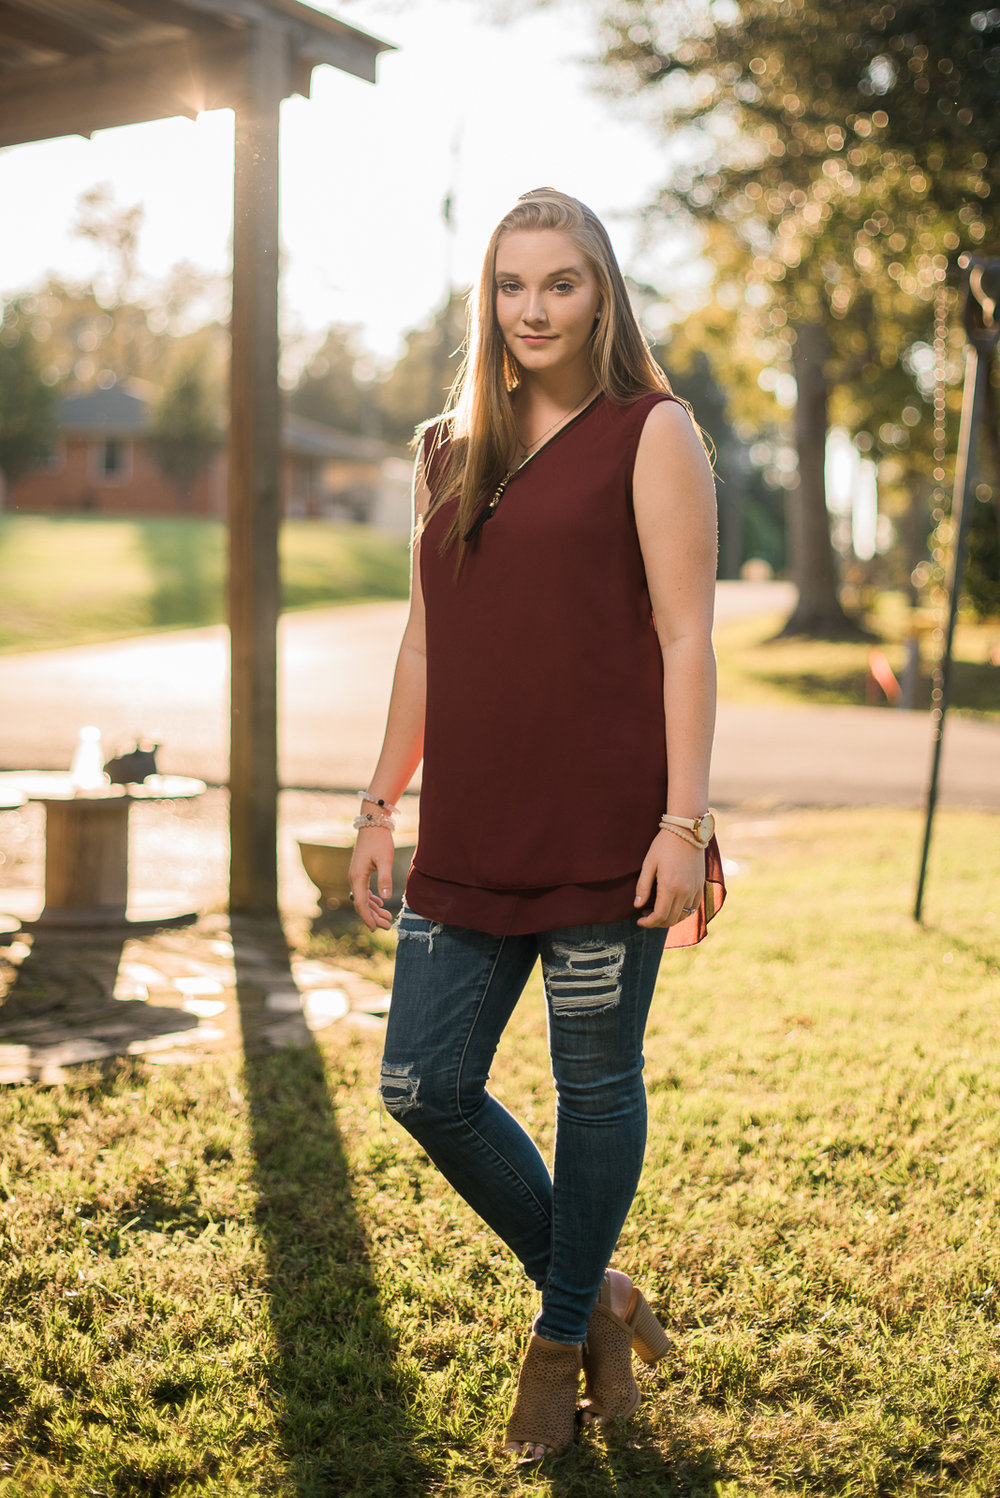 Ashlynn-Sumrall-MS-Senior-Photos-7.jpg